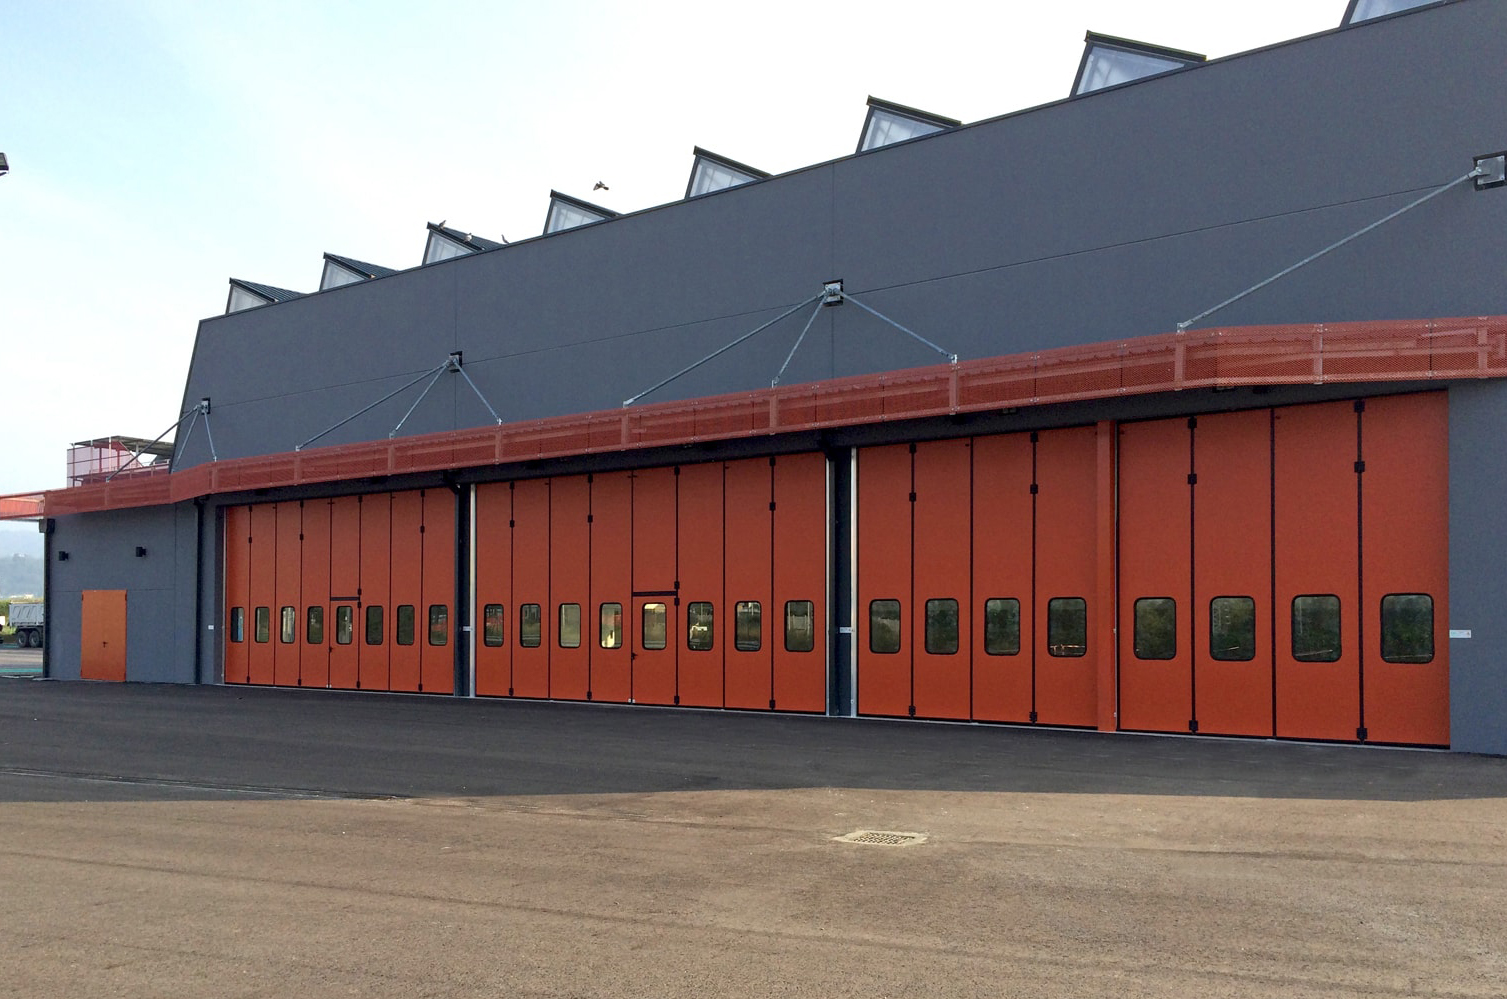 Folding Garage Doors for Commercial and Industrial Applications